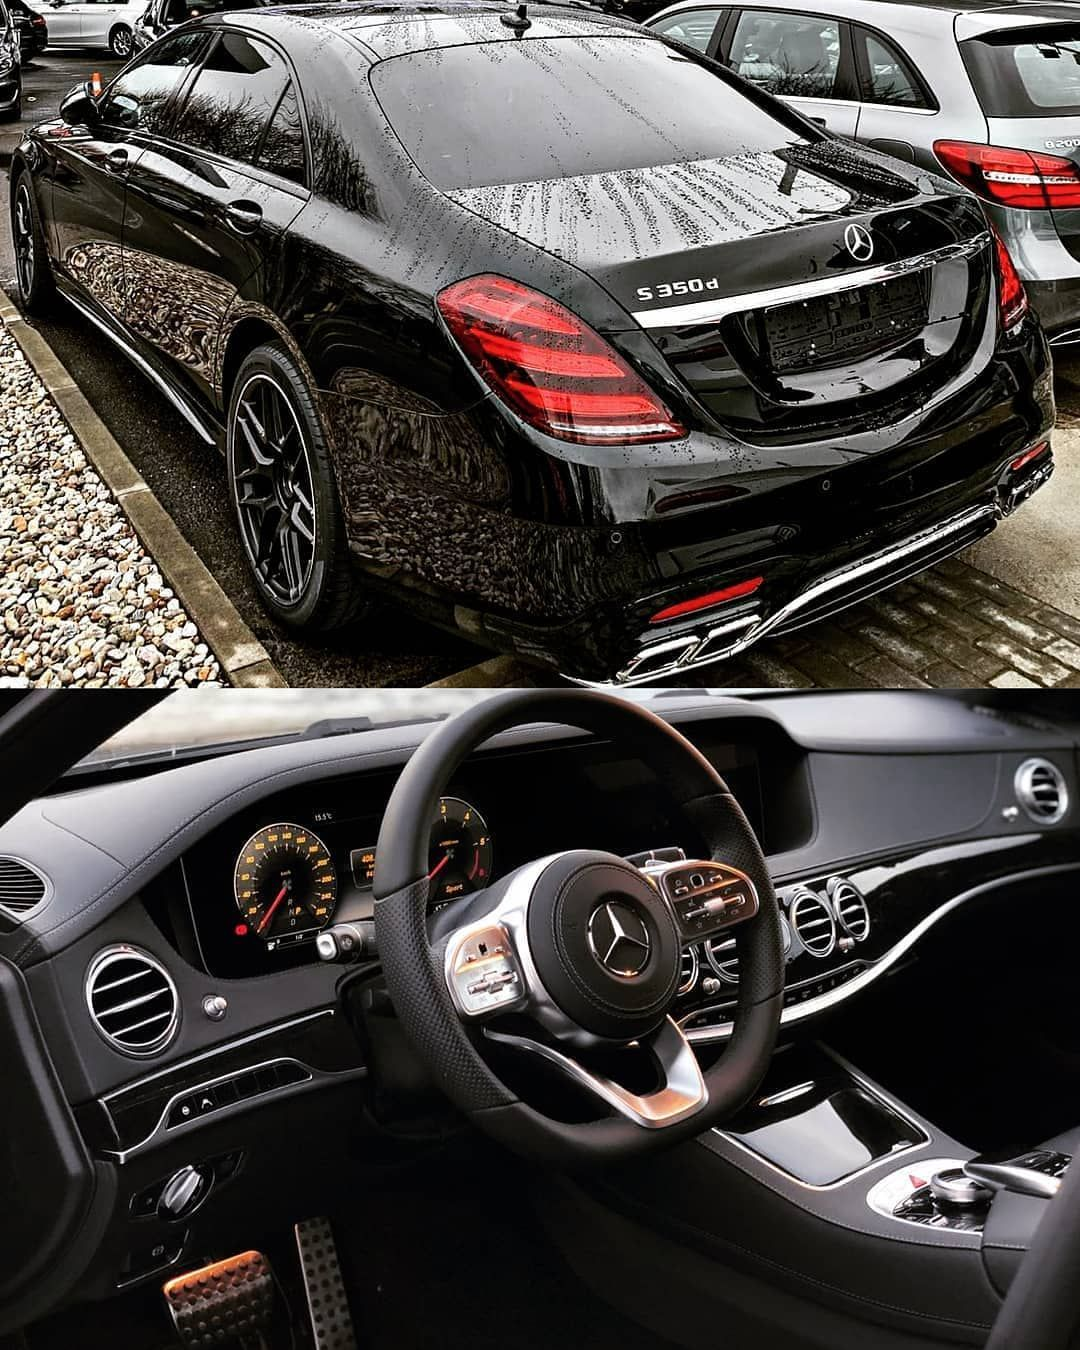 Mercedes Benz S350d with AMG bodykit ?Follow @uber.luxury for more?DM for Picture Credits.